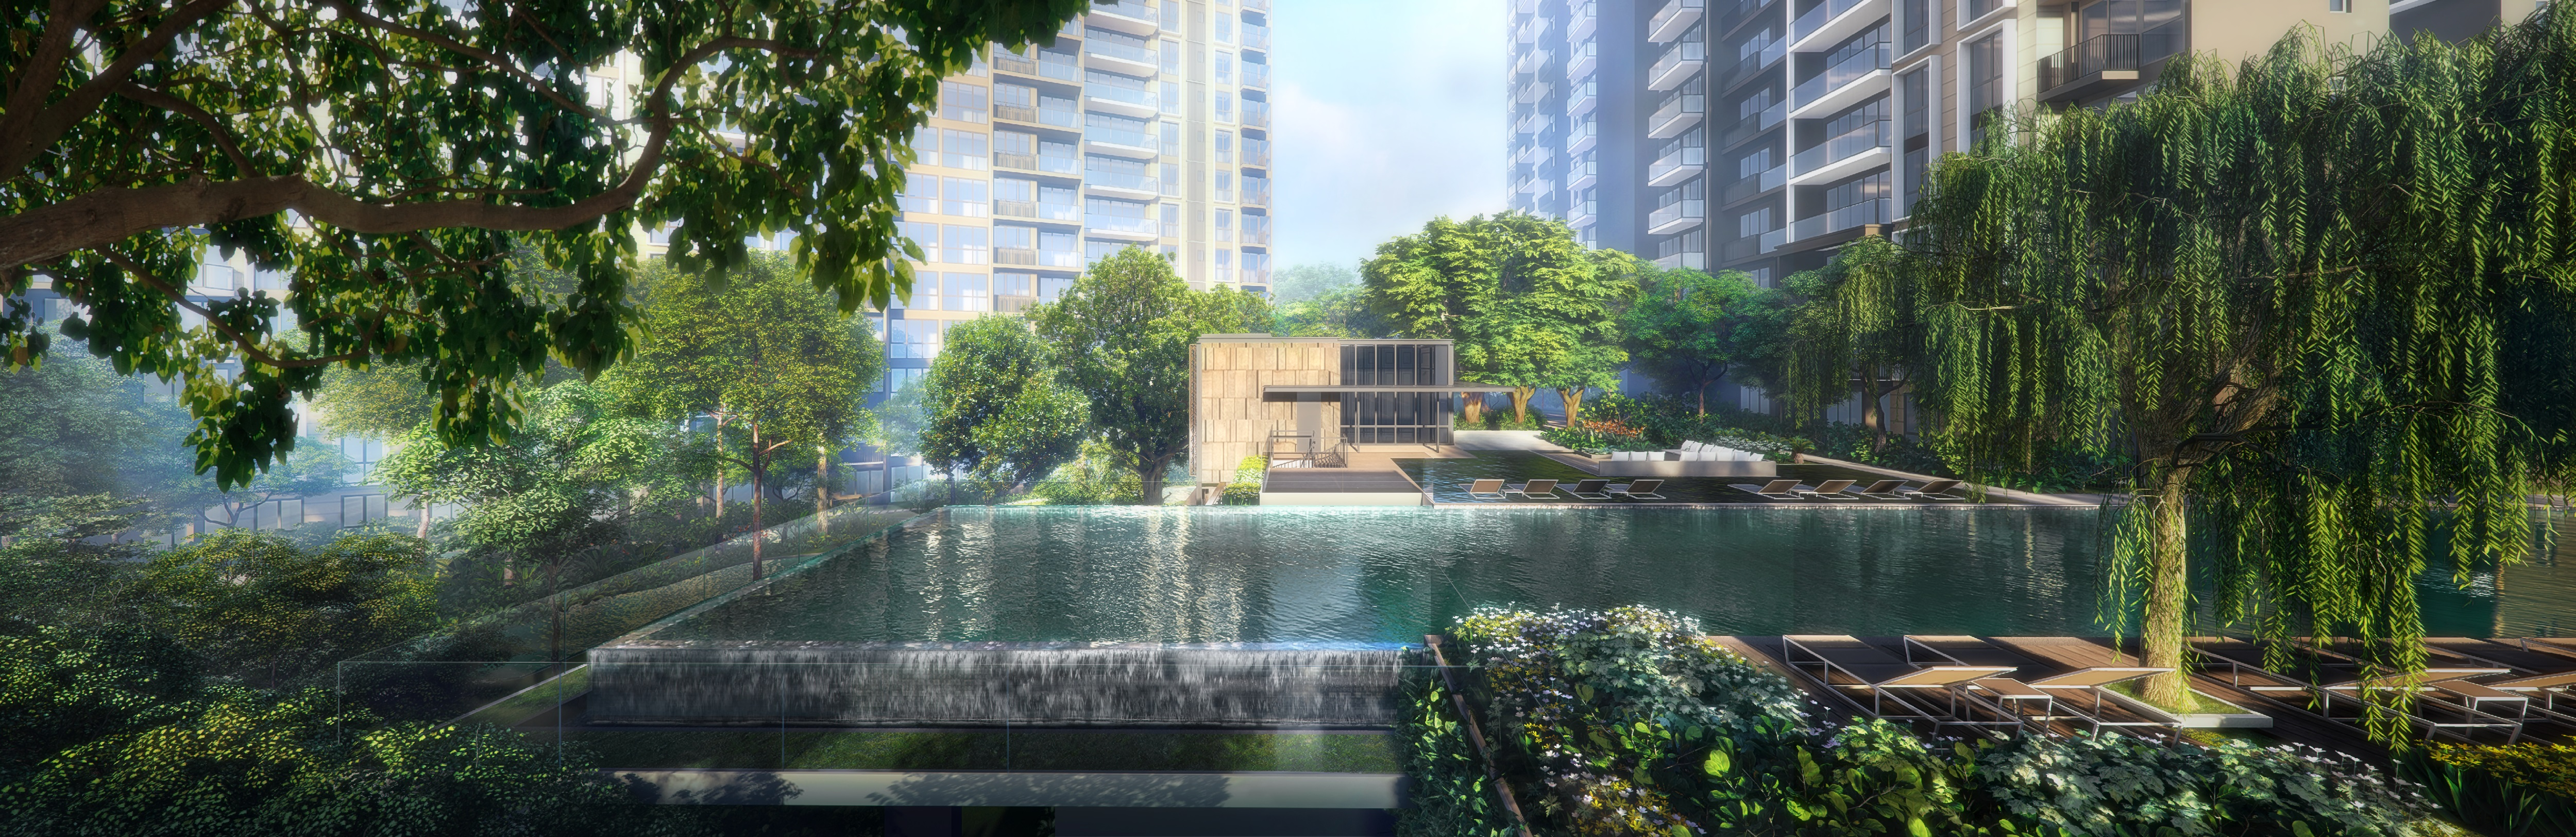 PARK COLONIAL - The project has more than 50 facilities, including a cantilevered, 50m lap pool